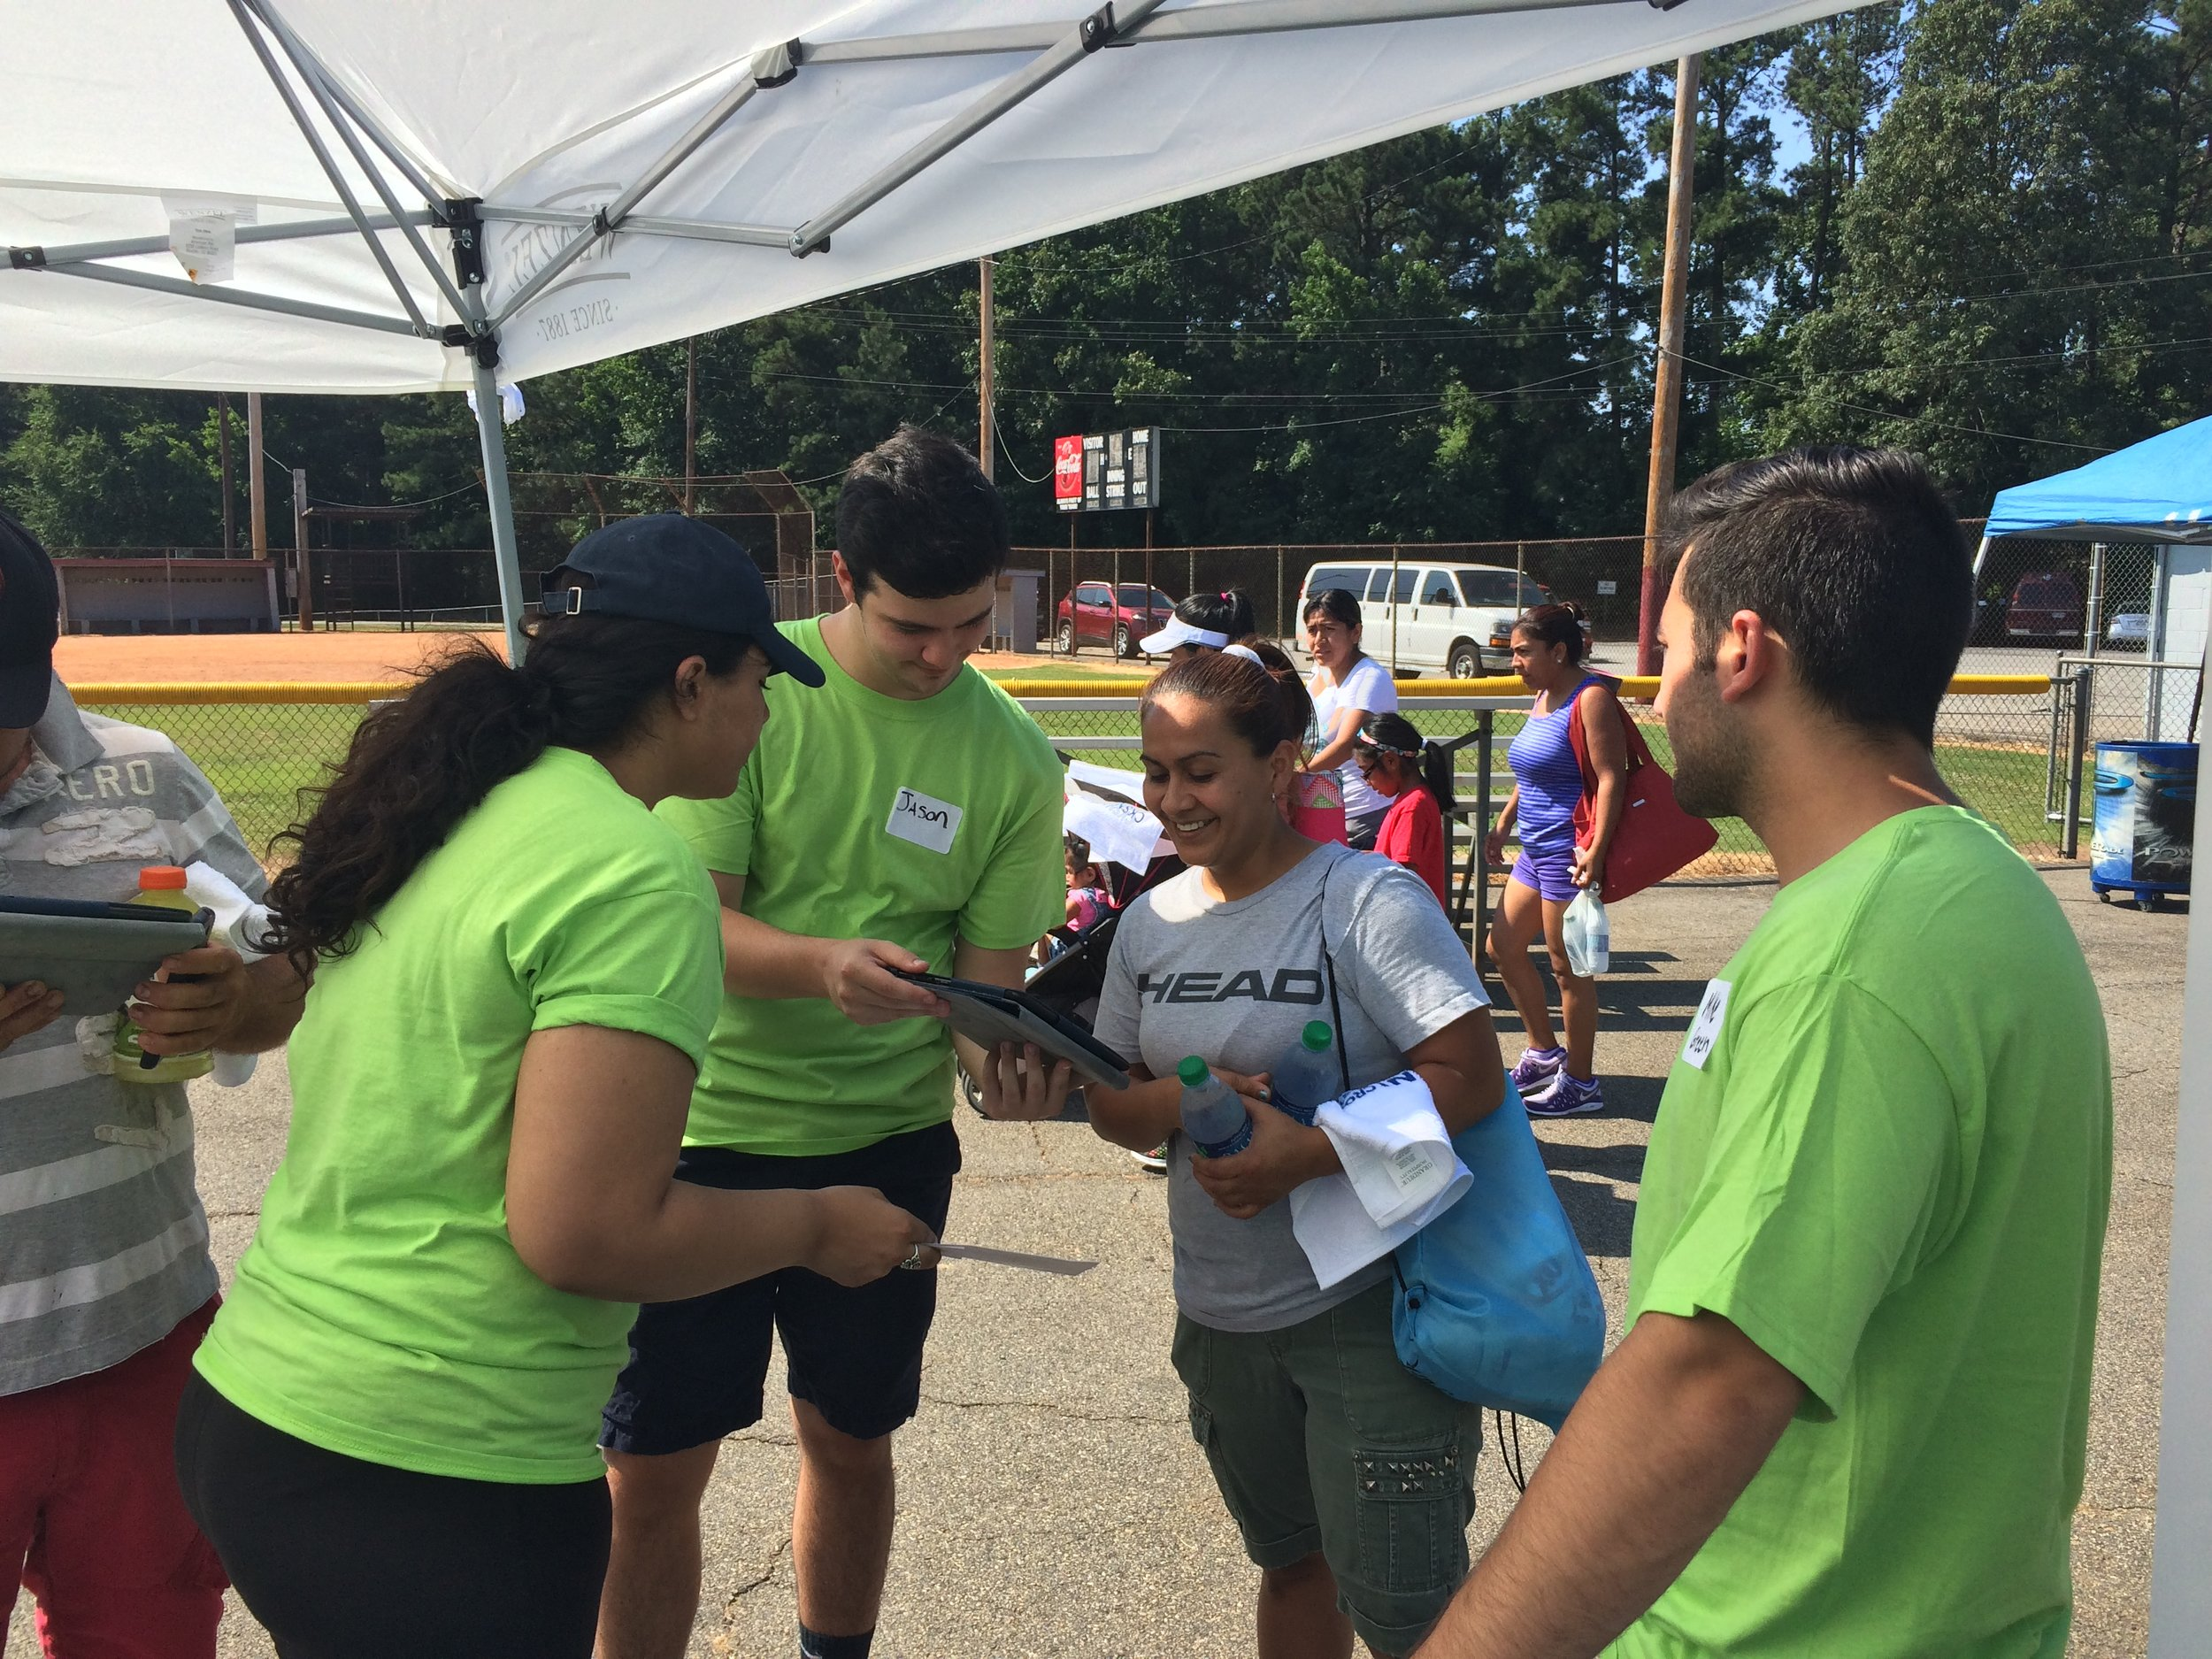 Emory students working with nonprofits in community to understand local housing needs.